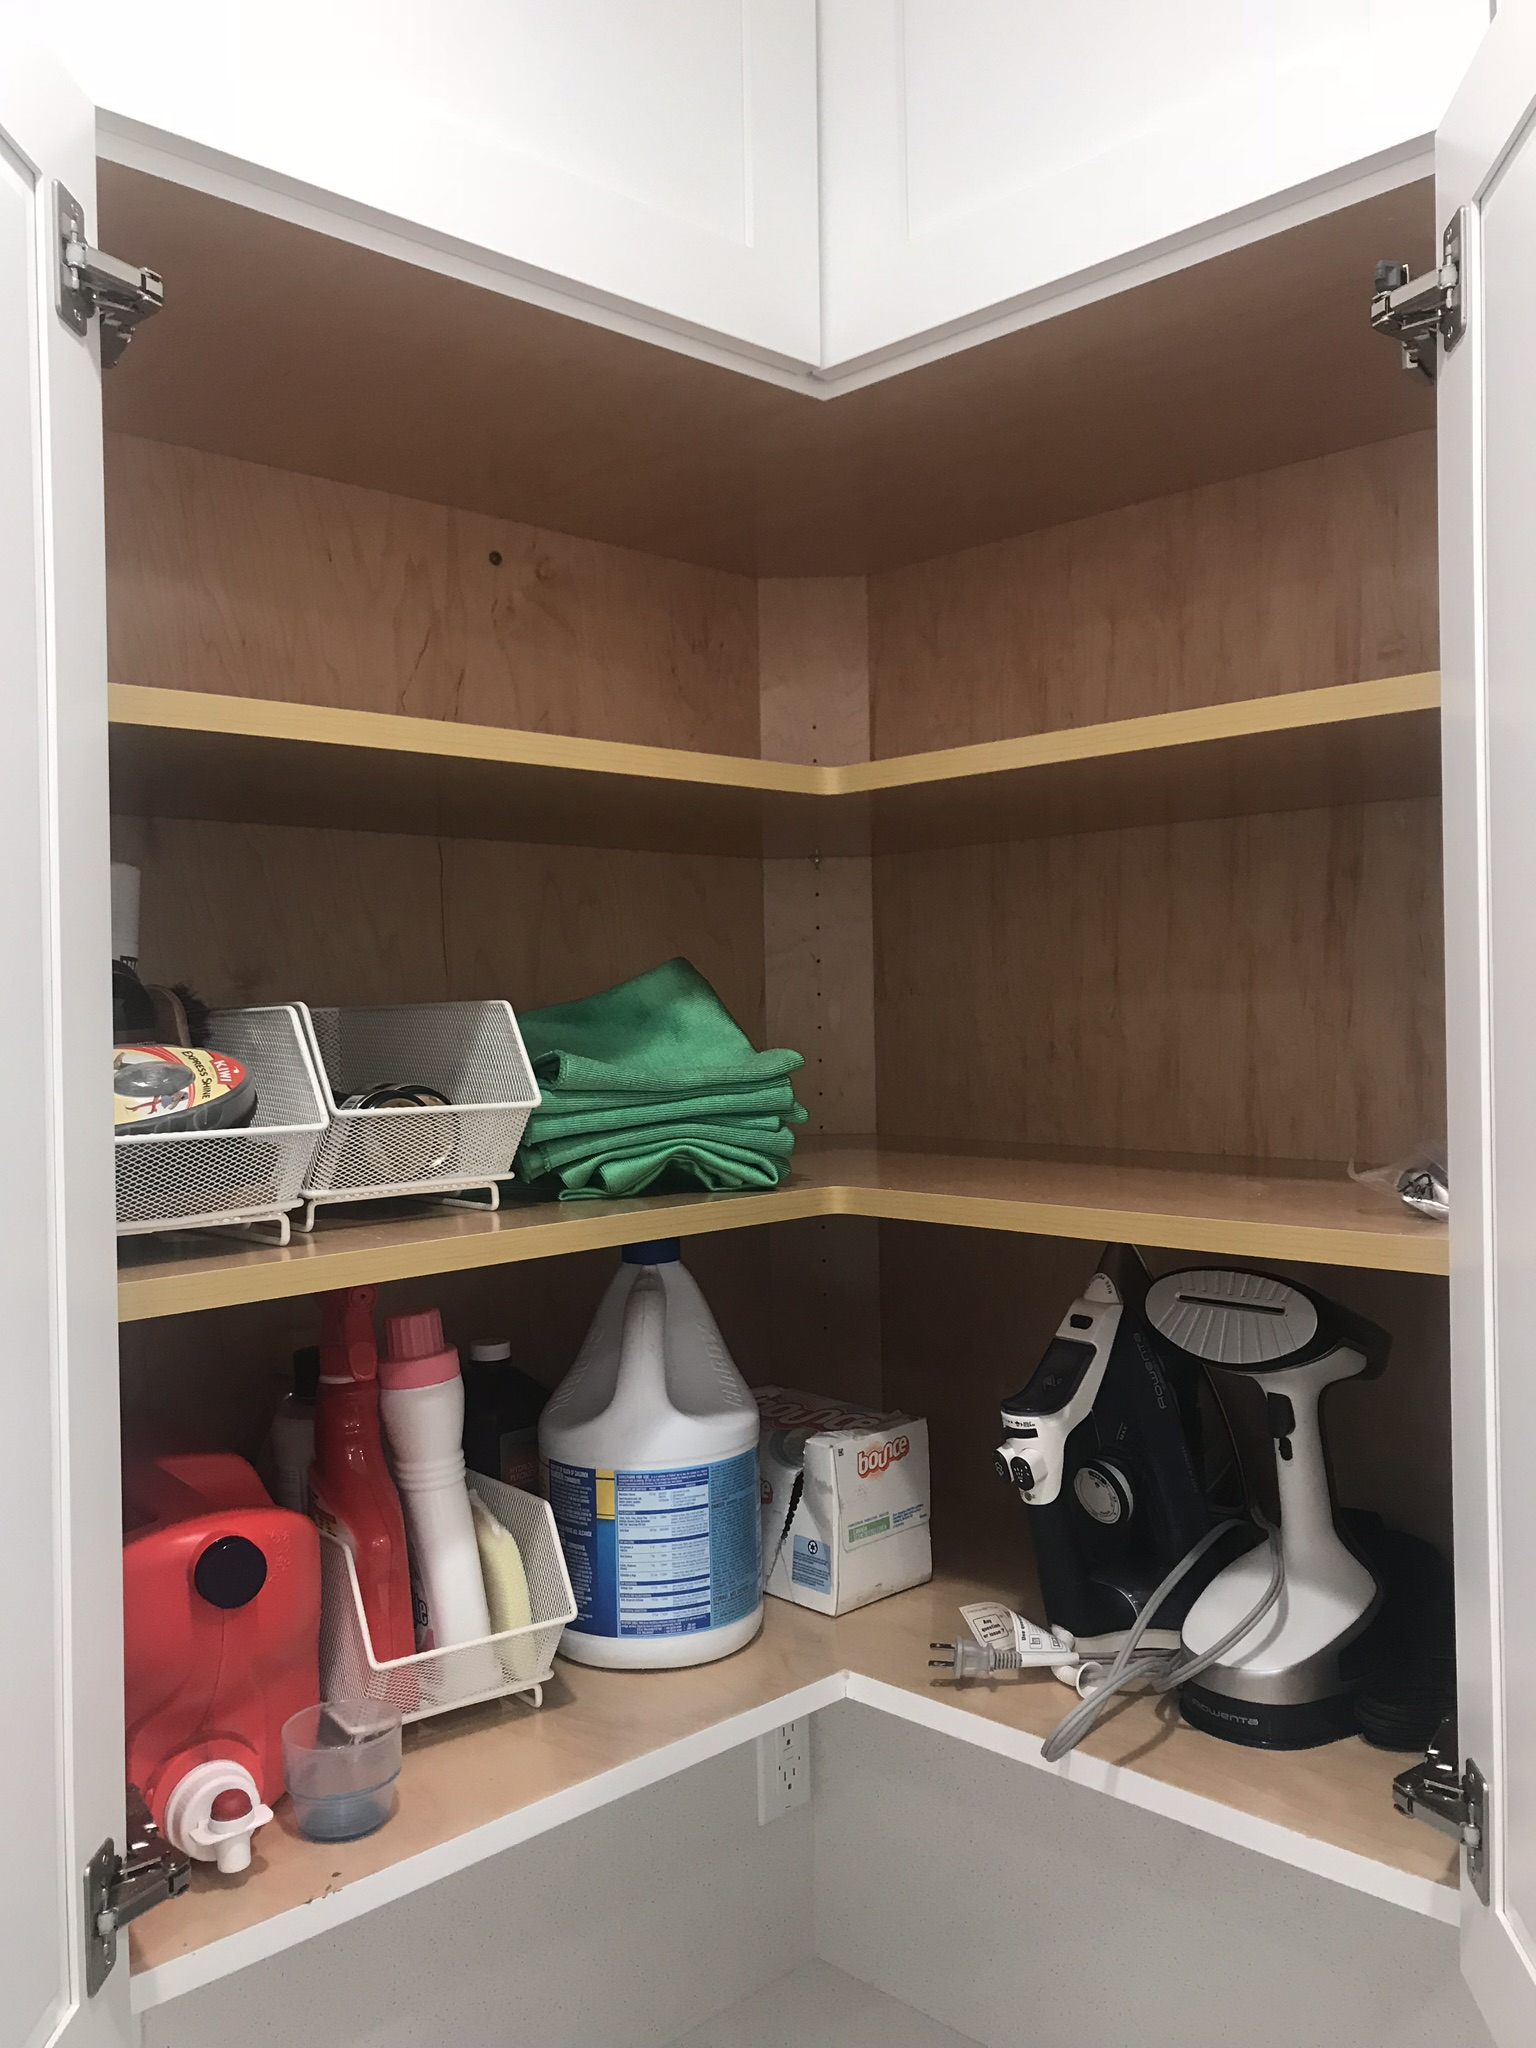 This is our laundry cabinet - everything we need, nothing we don't, and space if needs change. The cabinets above are empty, too!